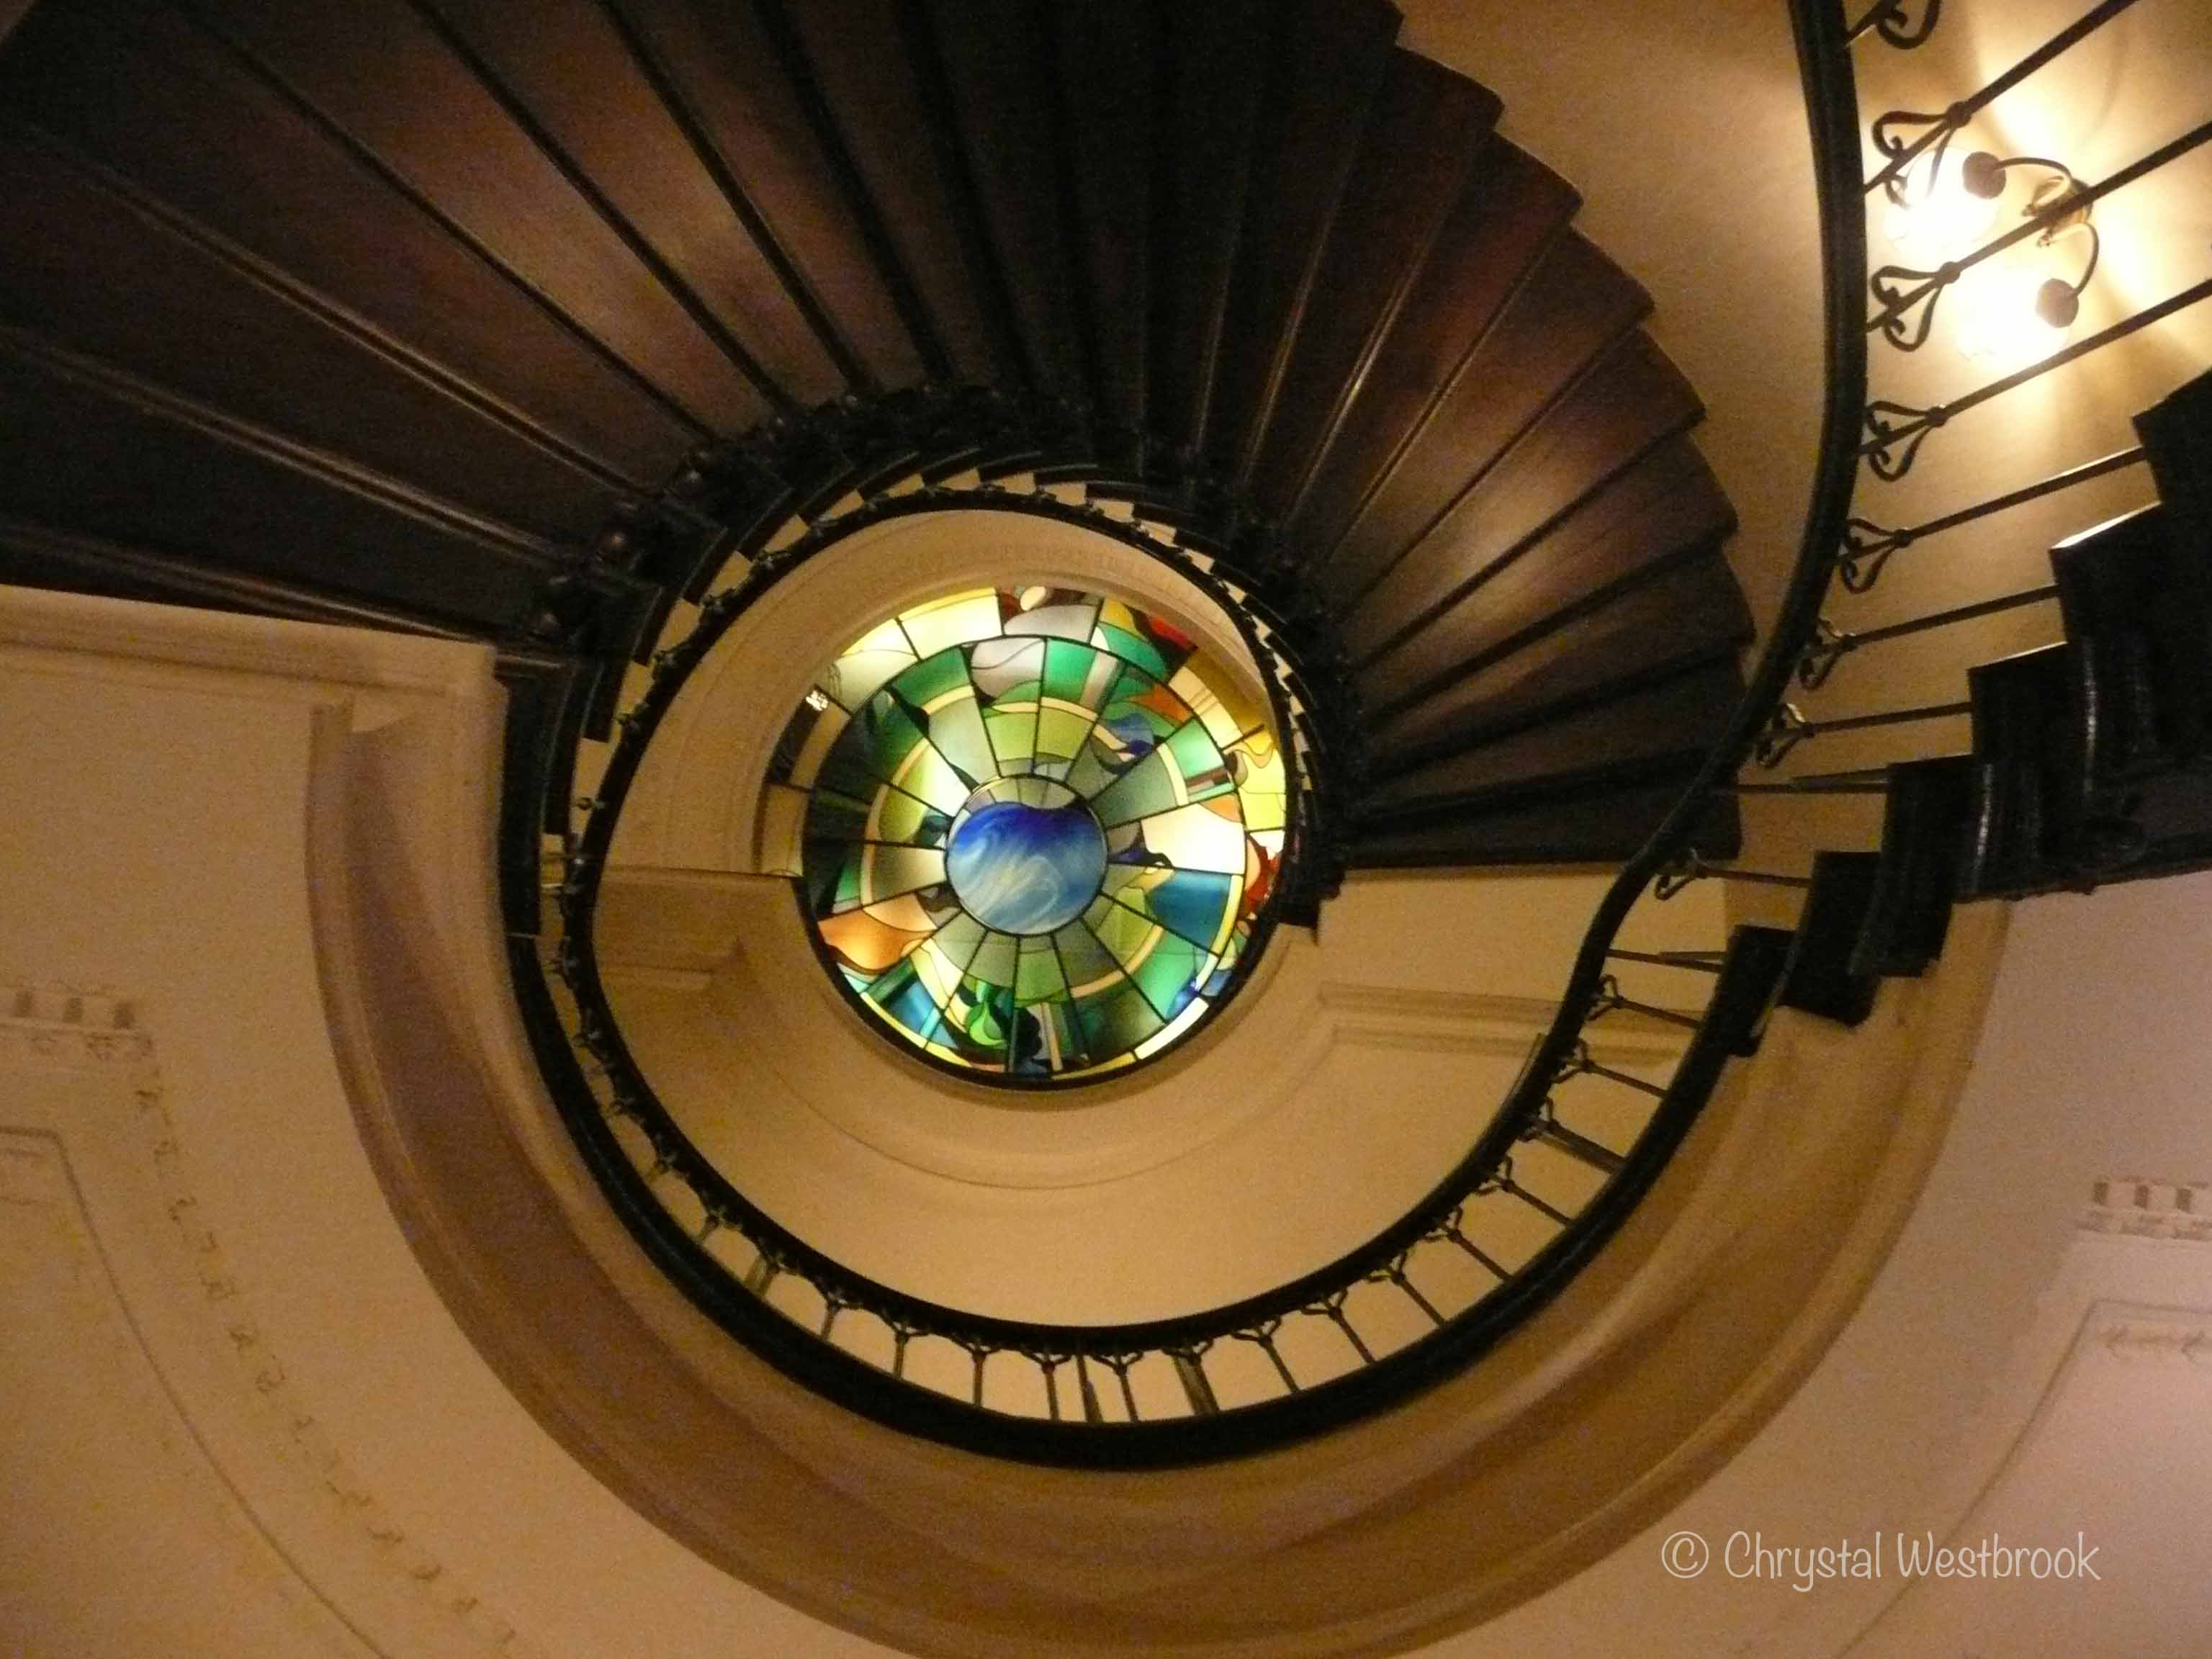 [IMAGE] Spiral staircase with stained glass